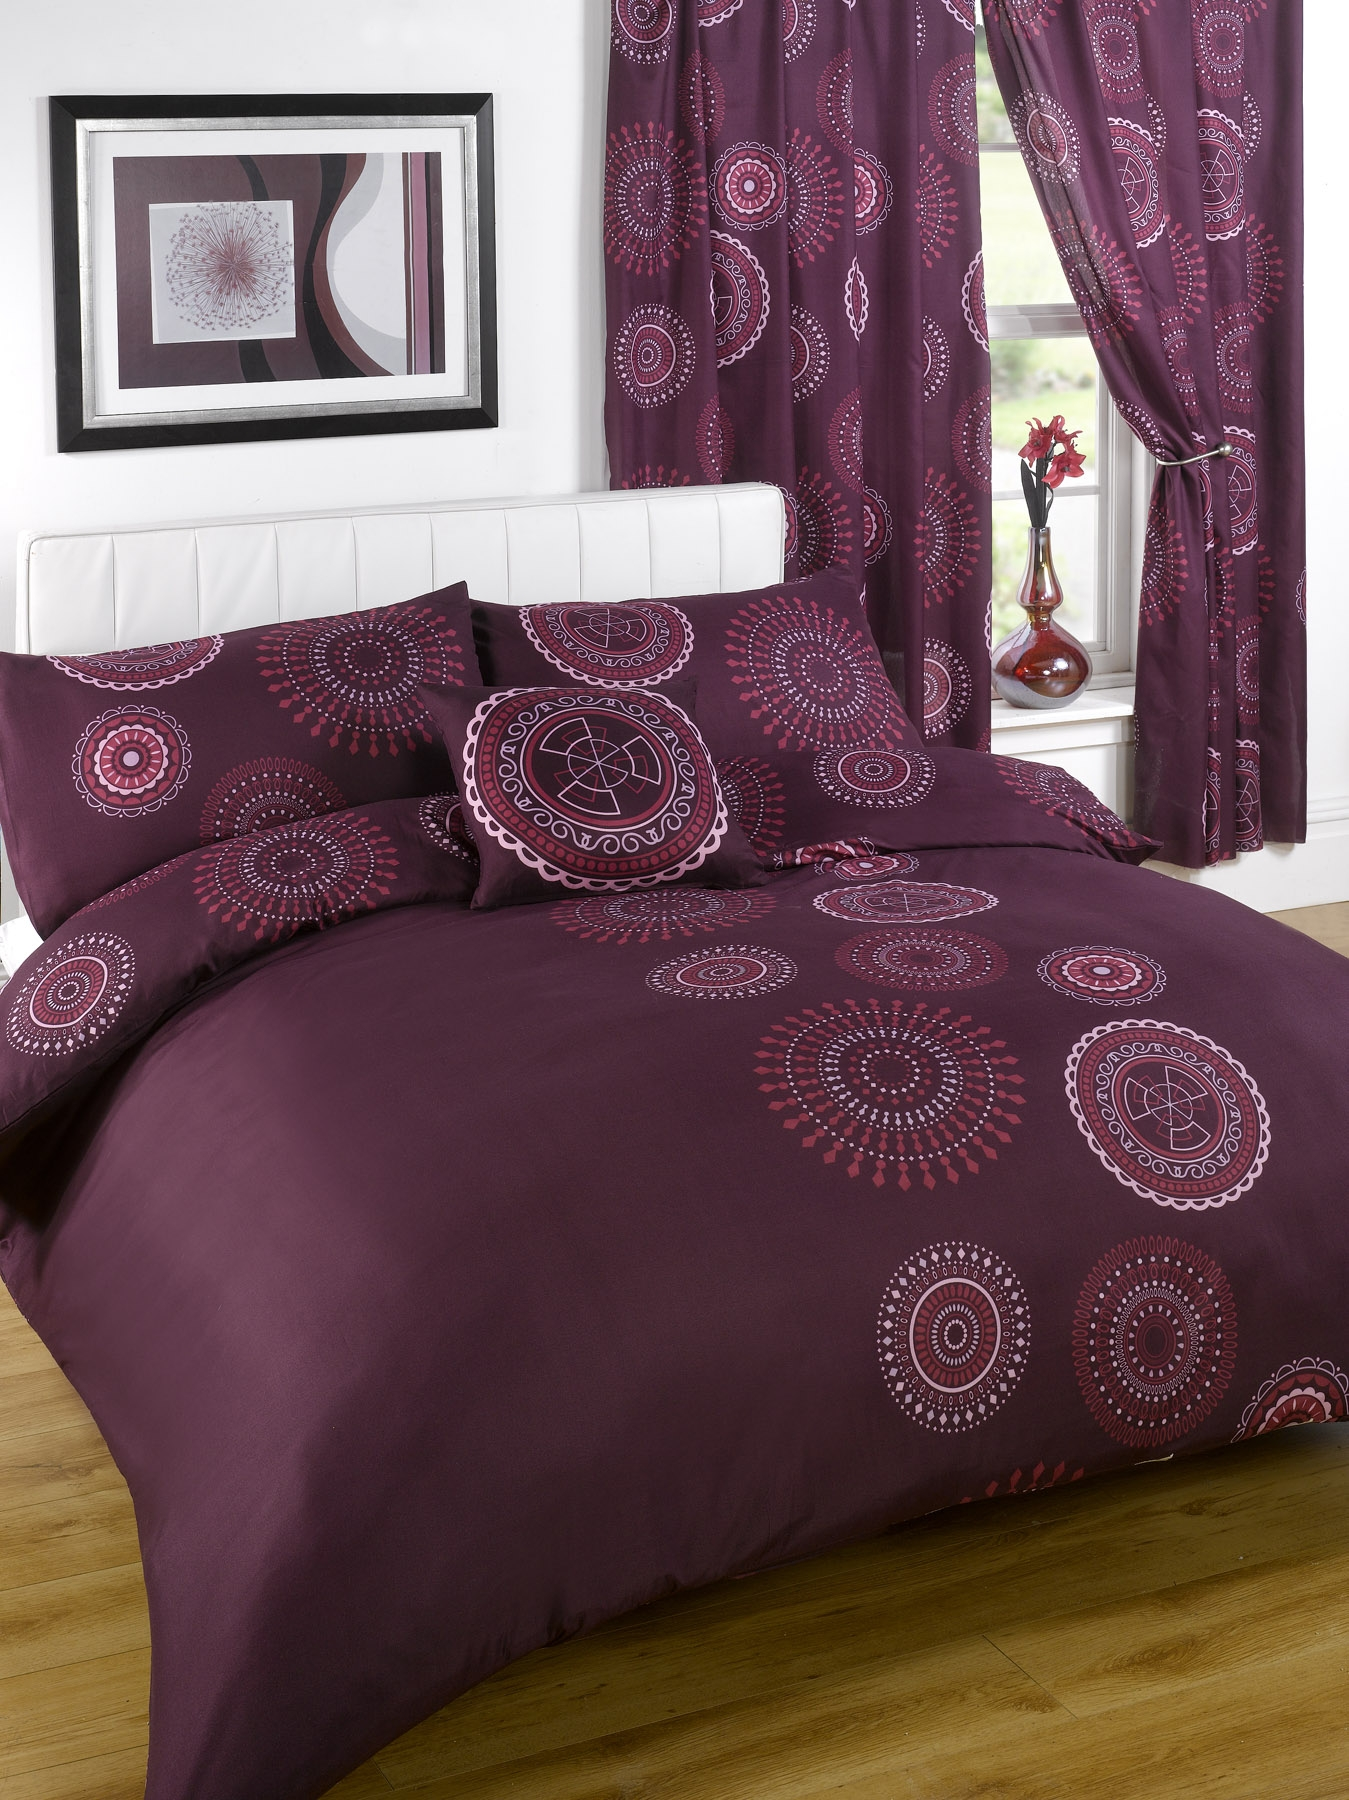 Bumper duvet complete bedding set with matching curtains - Complete bedroom sets with curtains ...